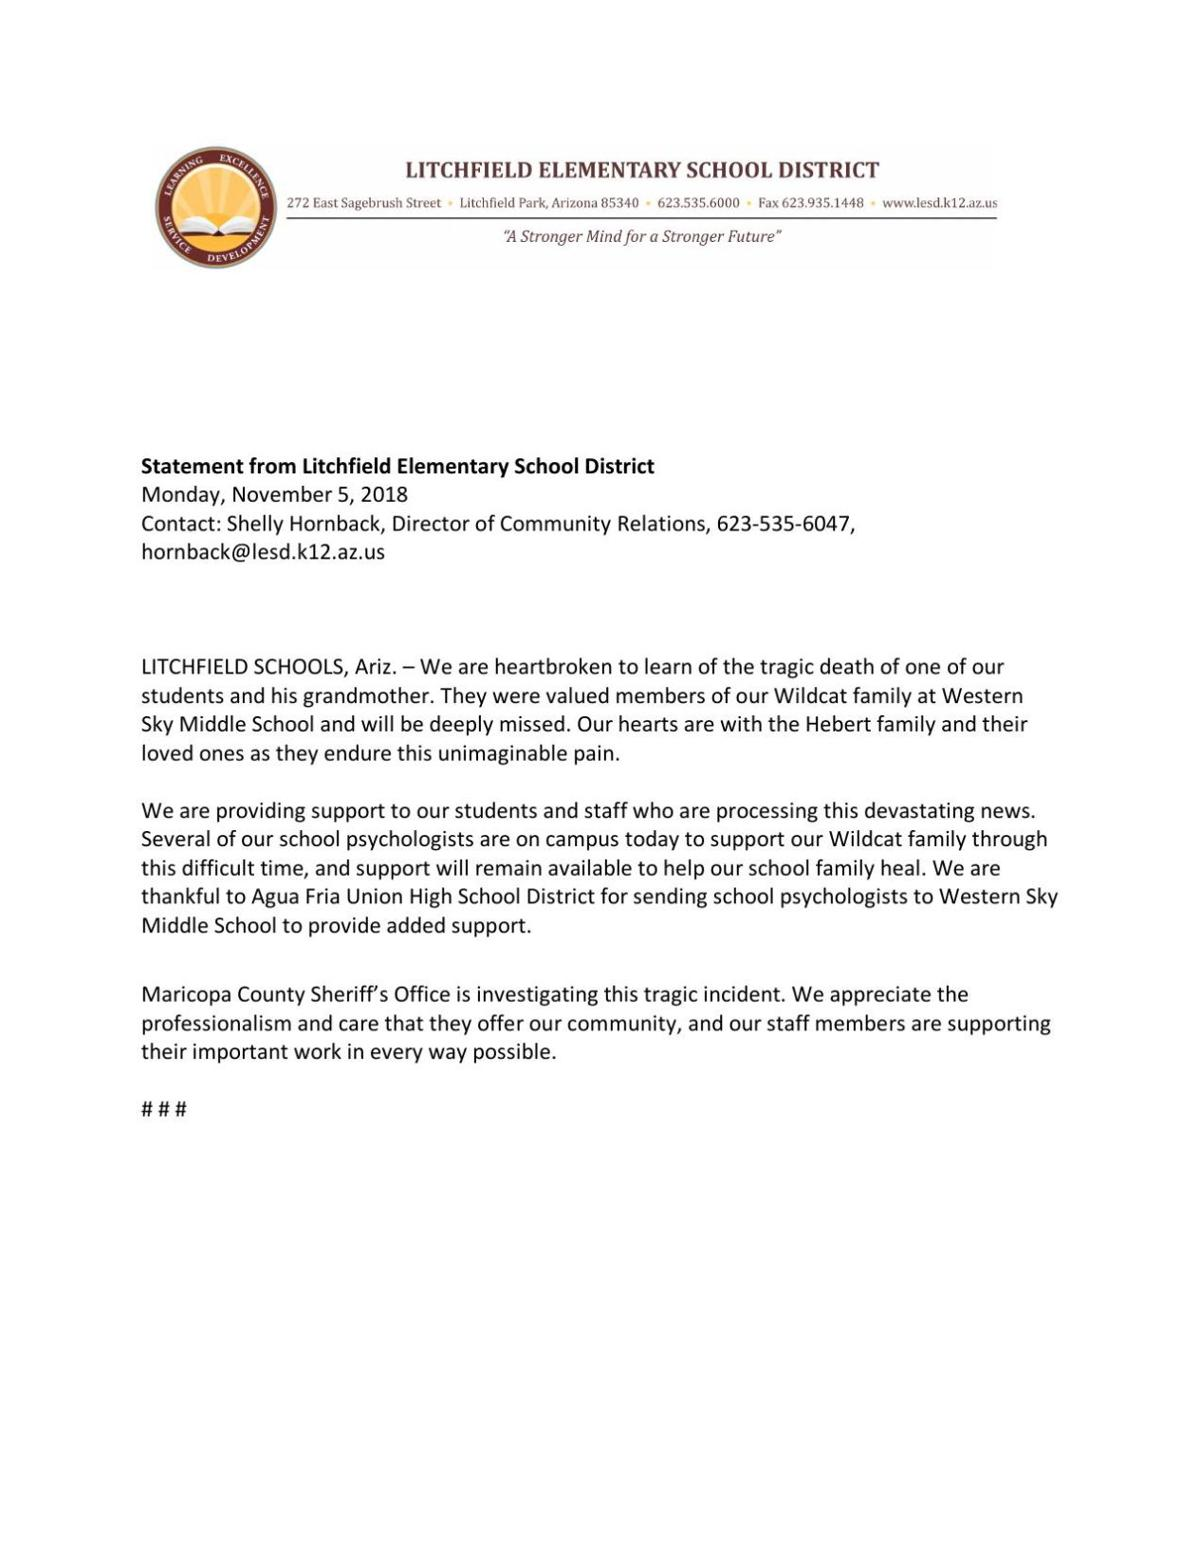 Statement from Litchfield Elementary School District